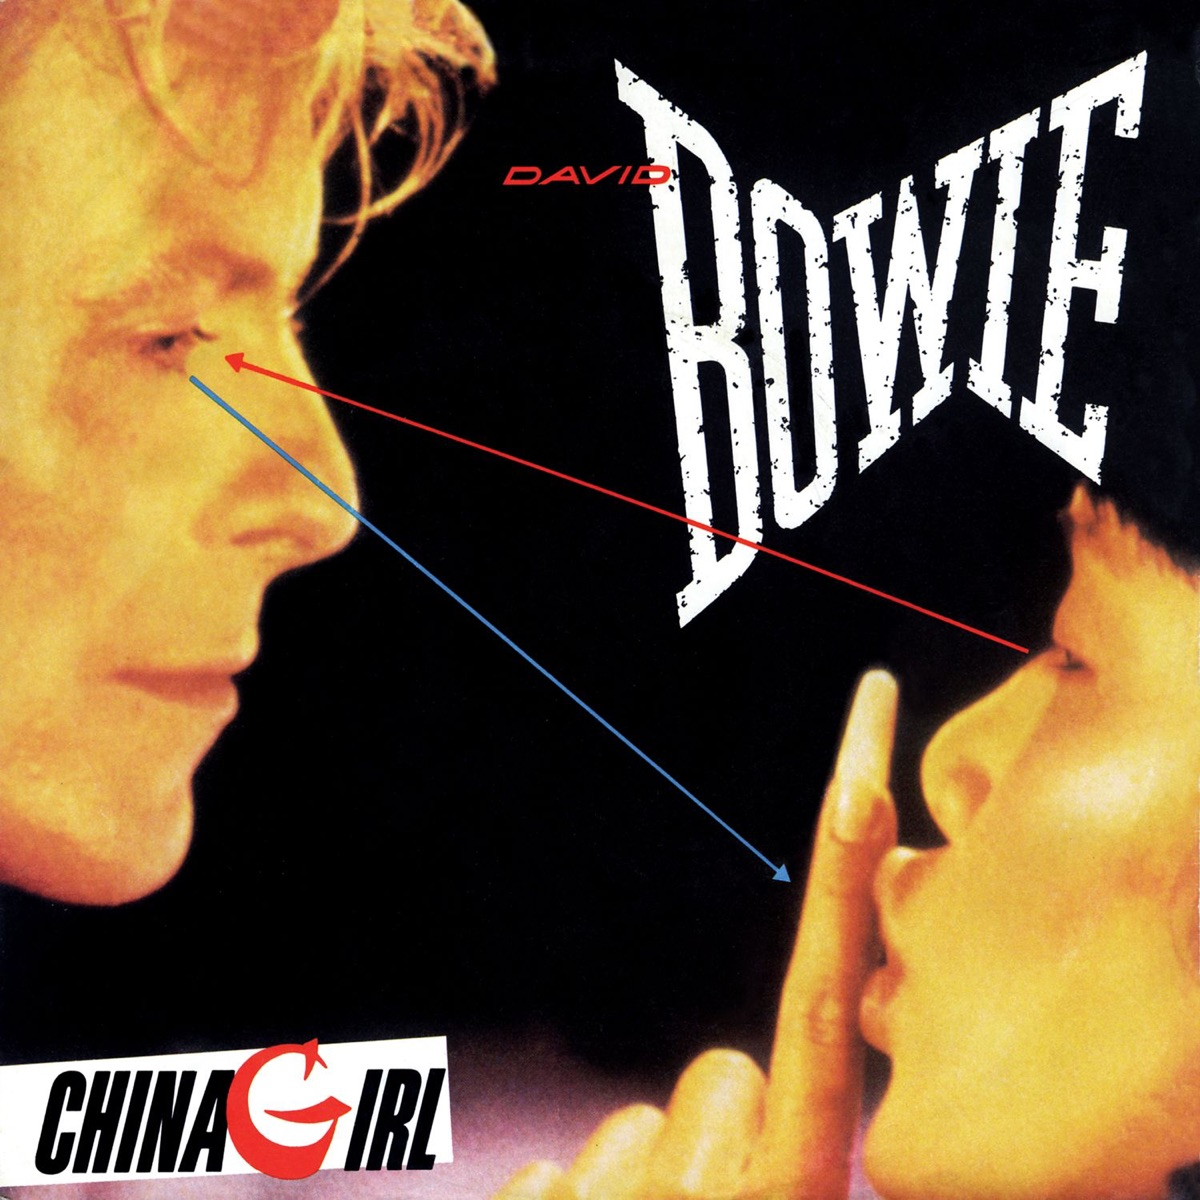 China Girl - Single Album Cover by David Bowie